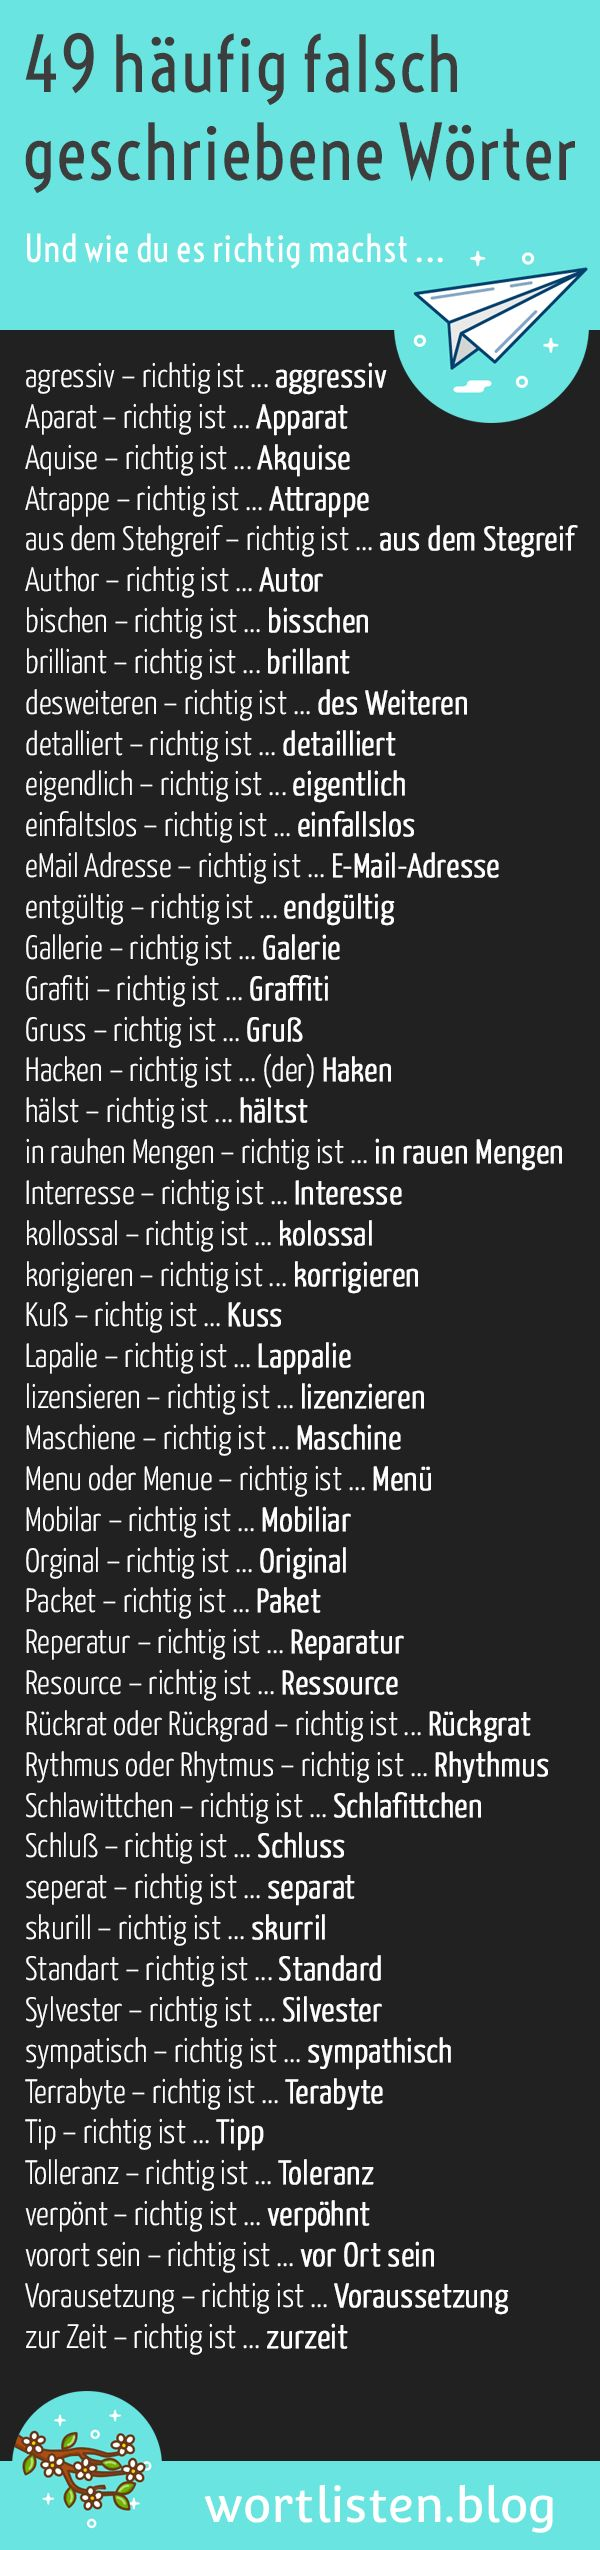 237 best learning images on Pinterest | Languages, Learn german and ...